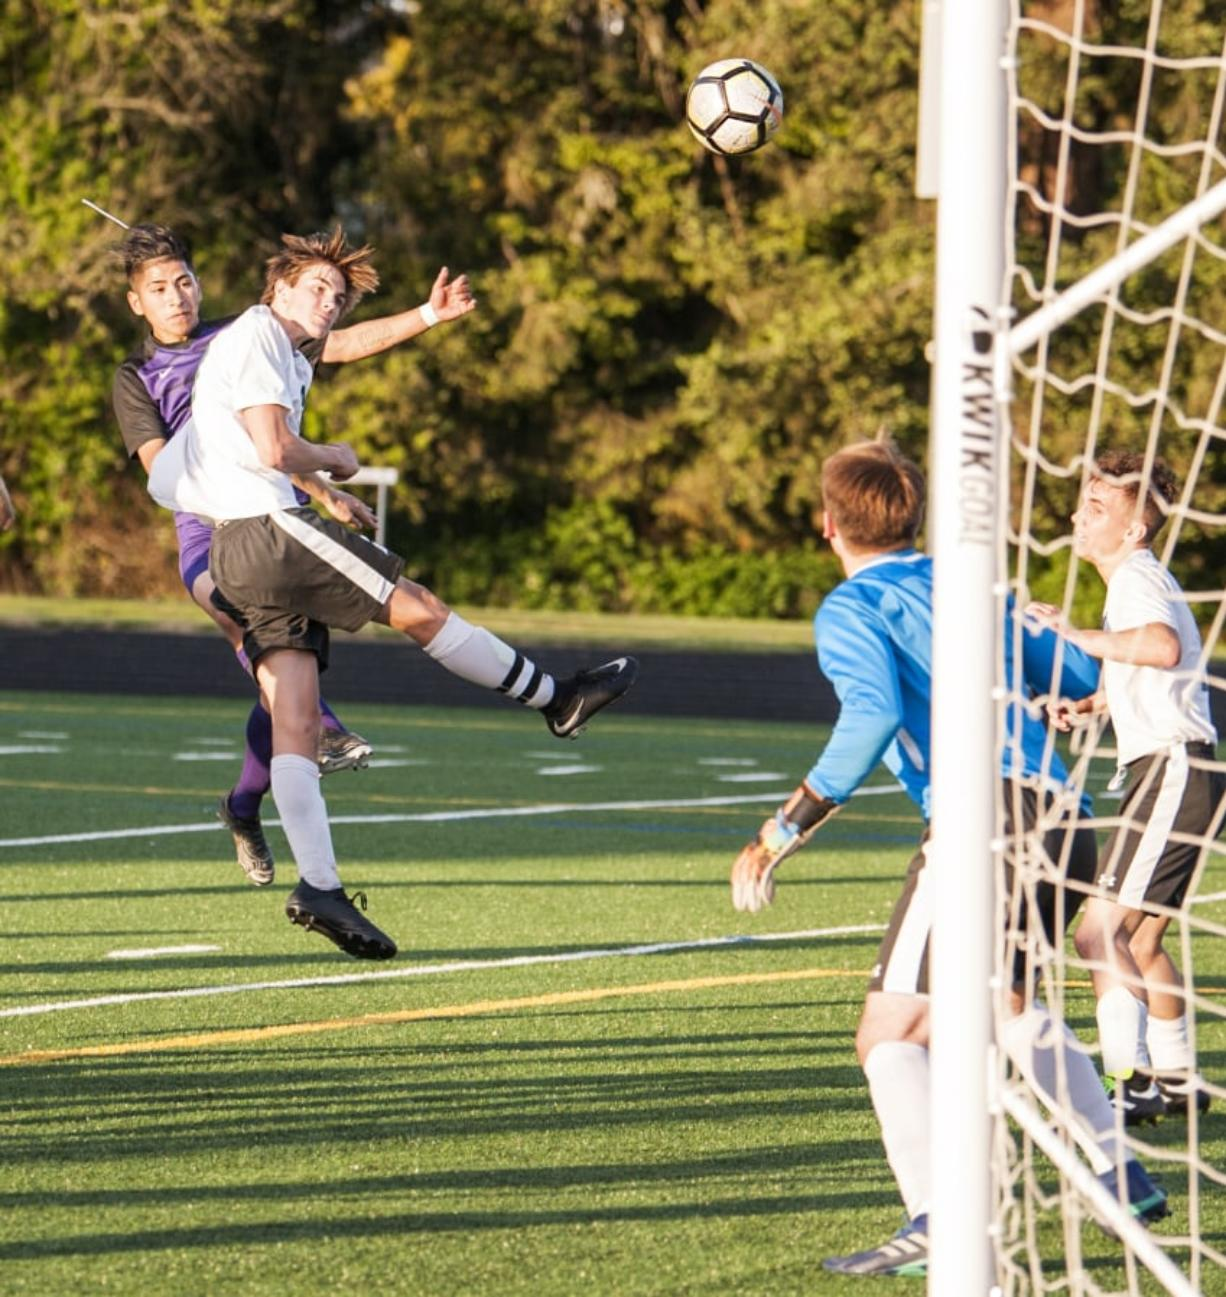 Columbia River's Julian Villa-Salas, left, admires his header over Woodland's Brooks Massey as the ball sails toward Woodland goalkeeper Treyson Thrall, who deflected it into the net. The goal put the Chieftains up 1-0 on the way to 3-0 victory Thursday at Chieftain Stadium in the 2A district championship.